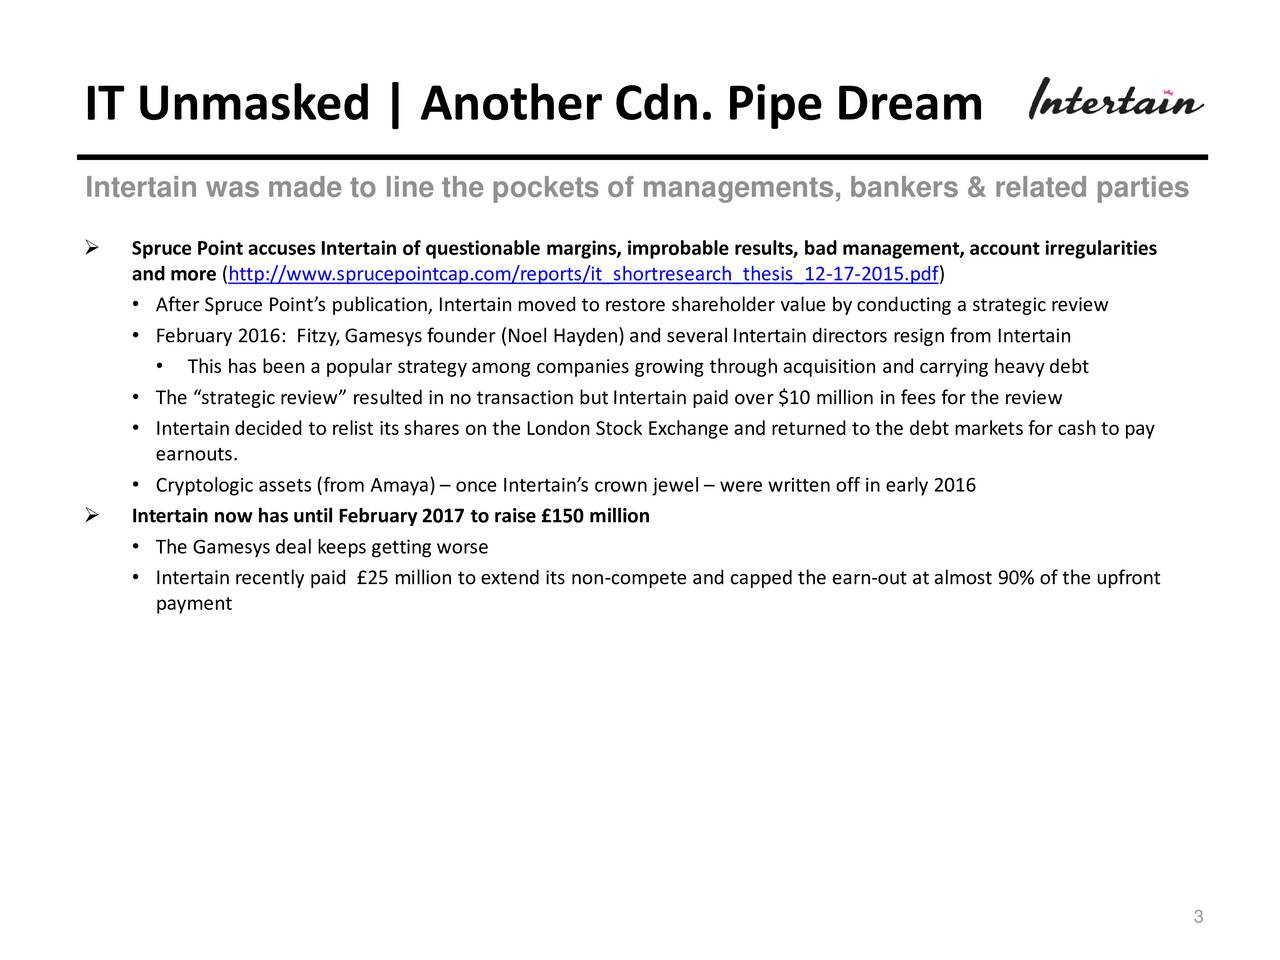 Intertain was made to line the pockets of managements, bankers & related parties Spruce Point accuses Intertain of questionable margins, improbable results, bad management, account irregularities and more (http://www.sprucepointcap.com/reports/it_shortresearch_thesis_12-17-2015.pdf) After Spruce Points publication, Intertain moved to restore shareholder value by conducting a strategic review February 2016: Fitzy,Gamesys founder (Noel Hayden) and severalIntertain directors resign from Intertain This has been a popular strategy among companies growing through acquisition and carrying heavy debt The strategic review resulted in no transaction butIntertain paid over $10 million in fees for the review Intertain decided to relist its shares on the London Stock Exchange and returned to the debt markets for cash to pay earnouts. Cryptologic assets (from Amaya) once Intertains crown jewel  were written off in early 2016 Intertain now has until February 2017 to raise 150 million The Gamesys deal keeps getting worse Intertain recently paid 25 million to extend its non-compete and capped the earn-out at almost 90% of the upfront payment 3